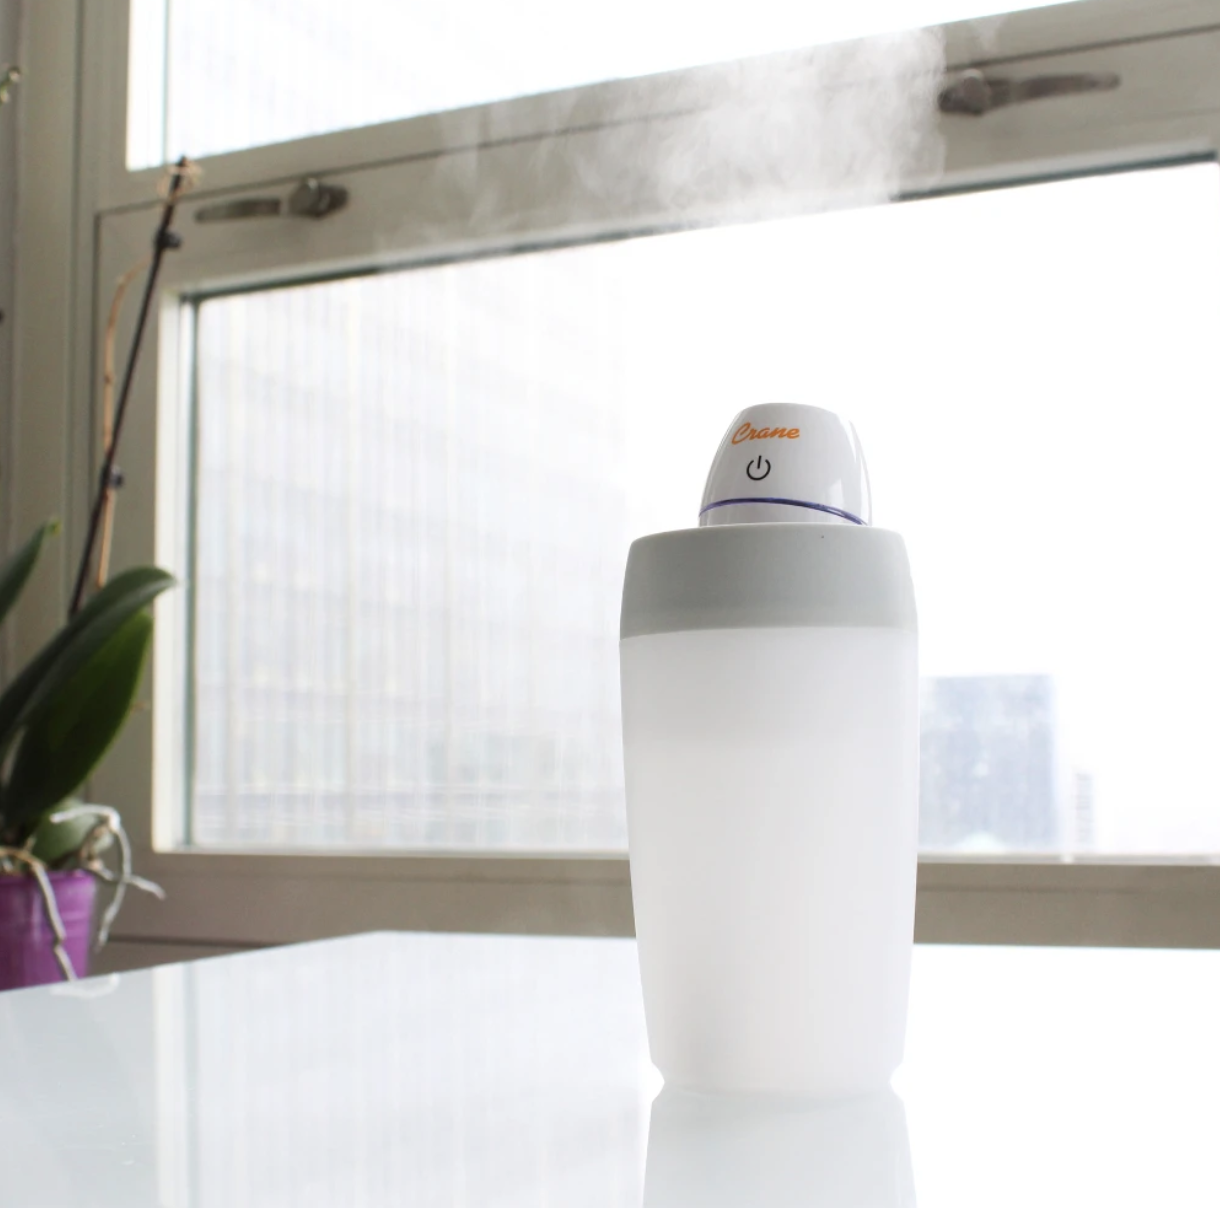 Mini humidifier placed on desk